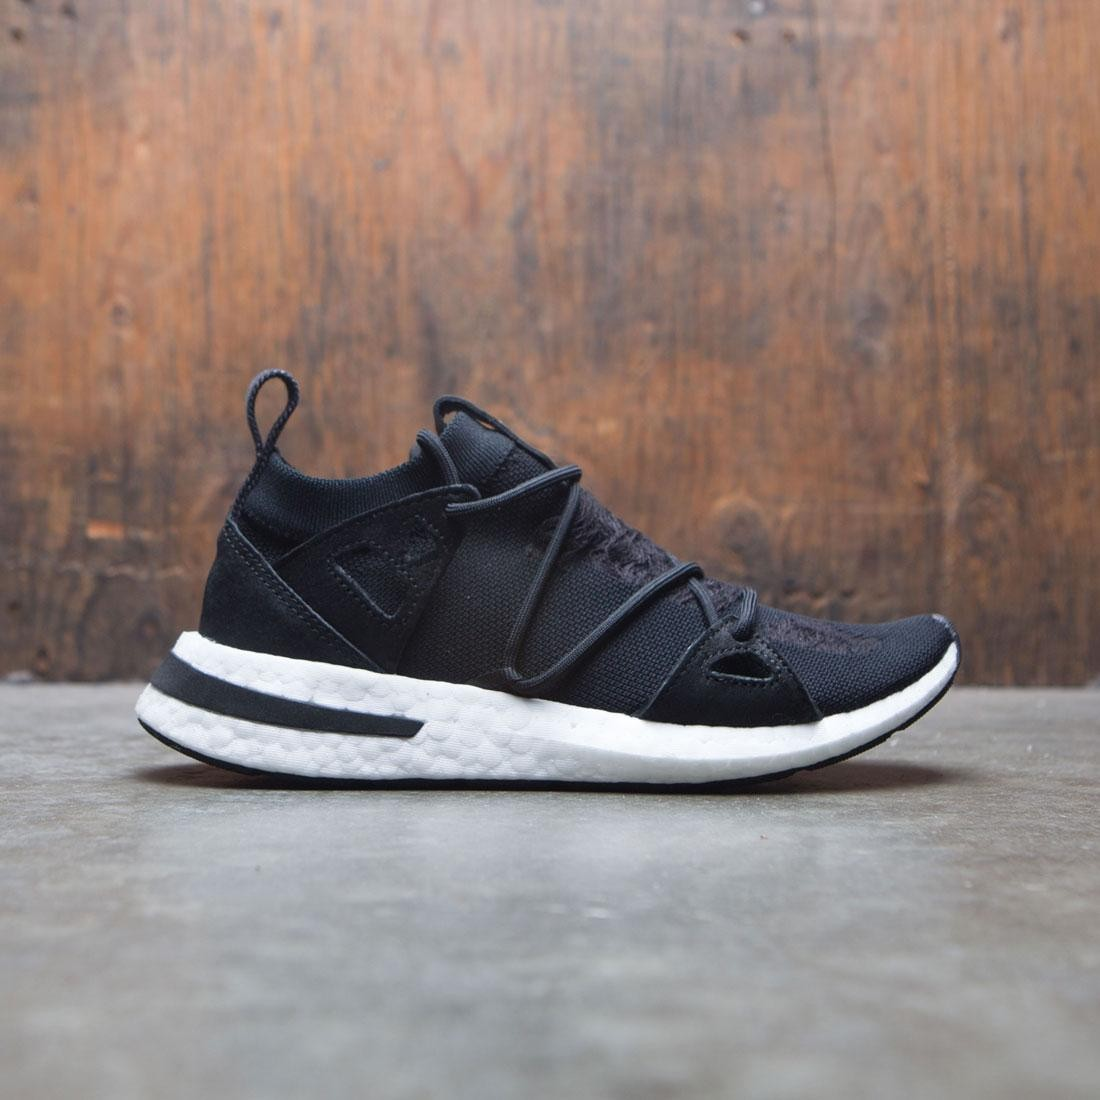 Adidas Consortium x Naked Women Arkyn (black / core black / footwear white)